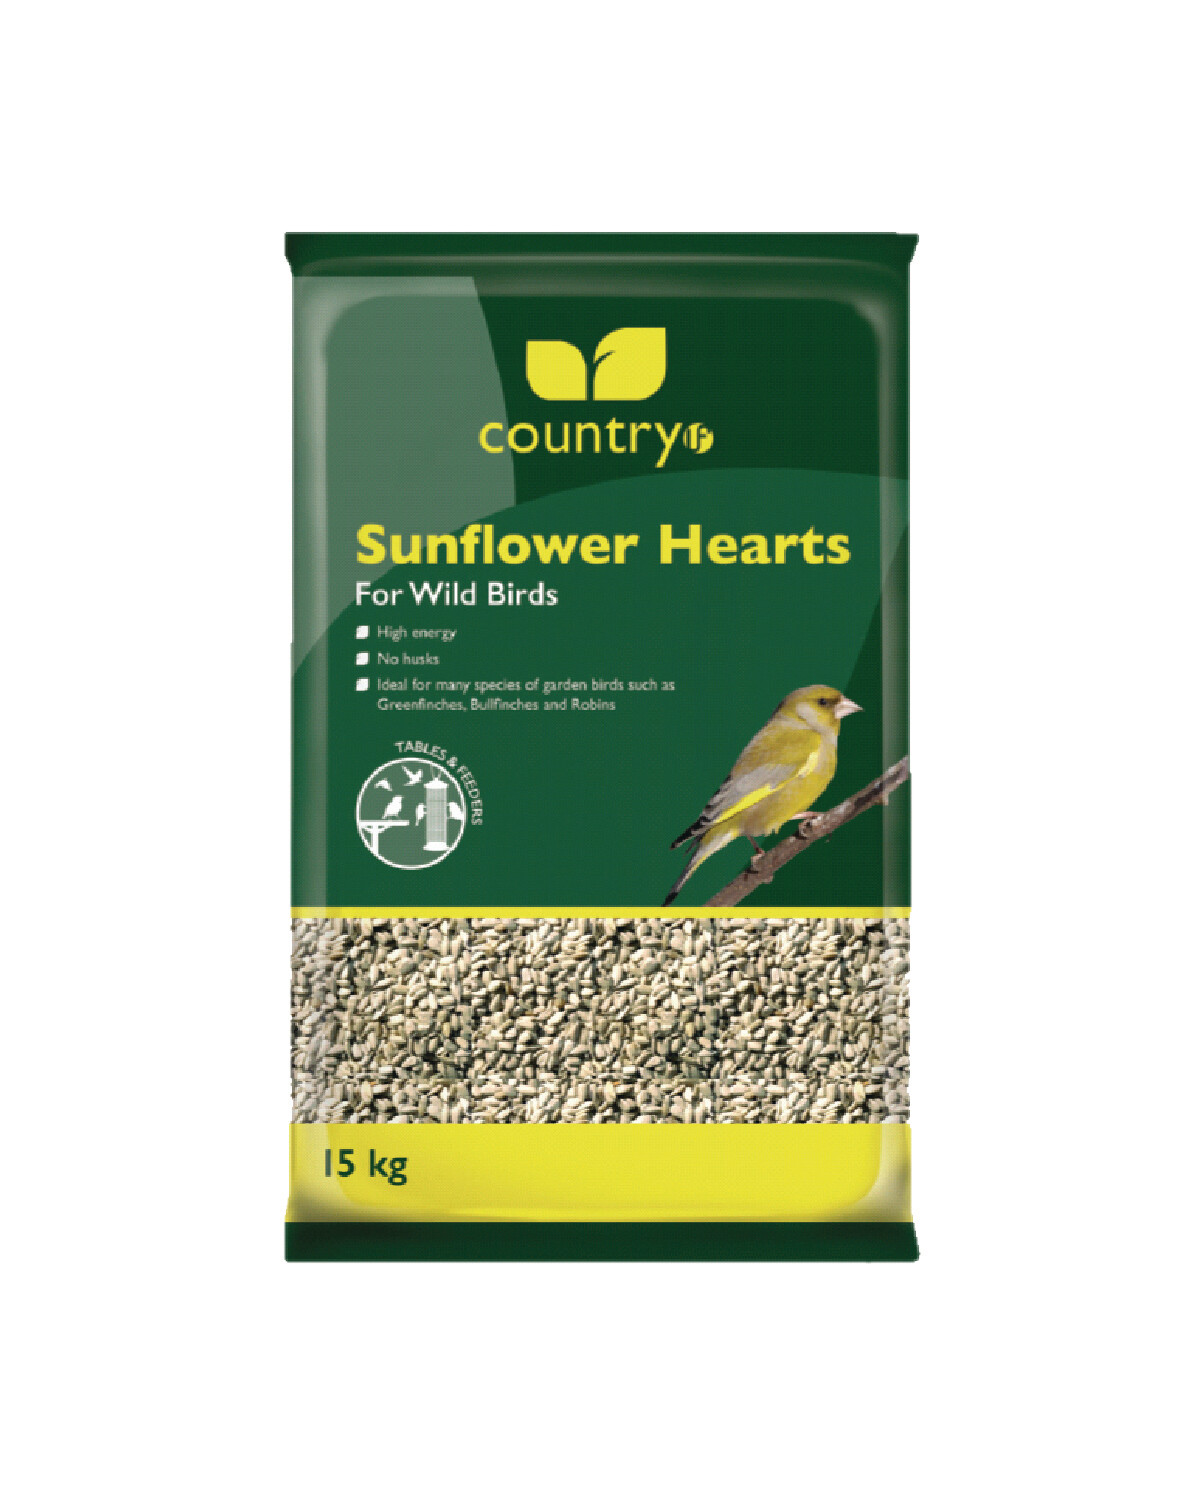 Country Sunflower Hearts